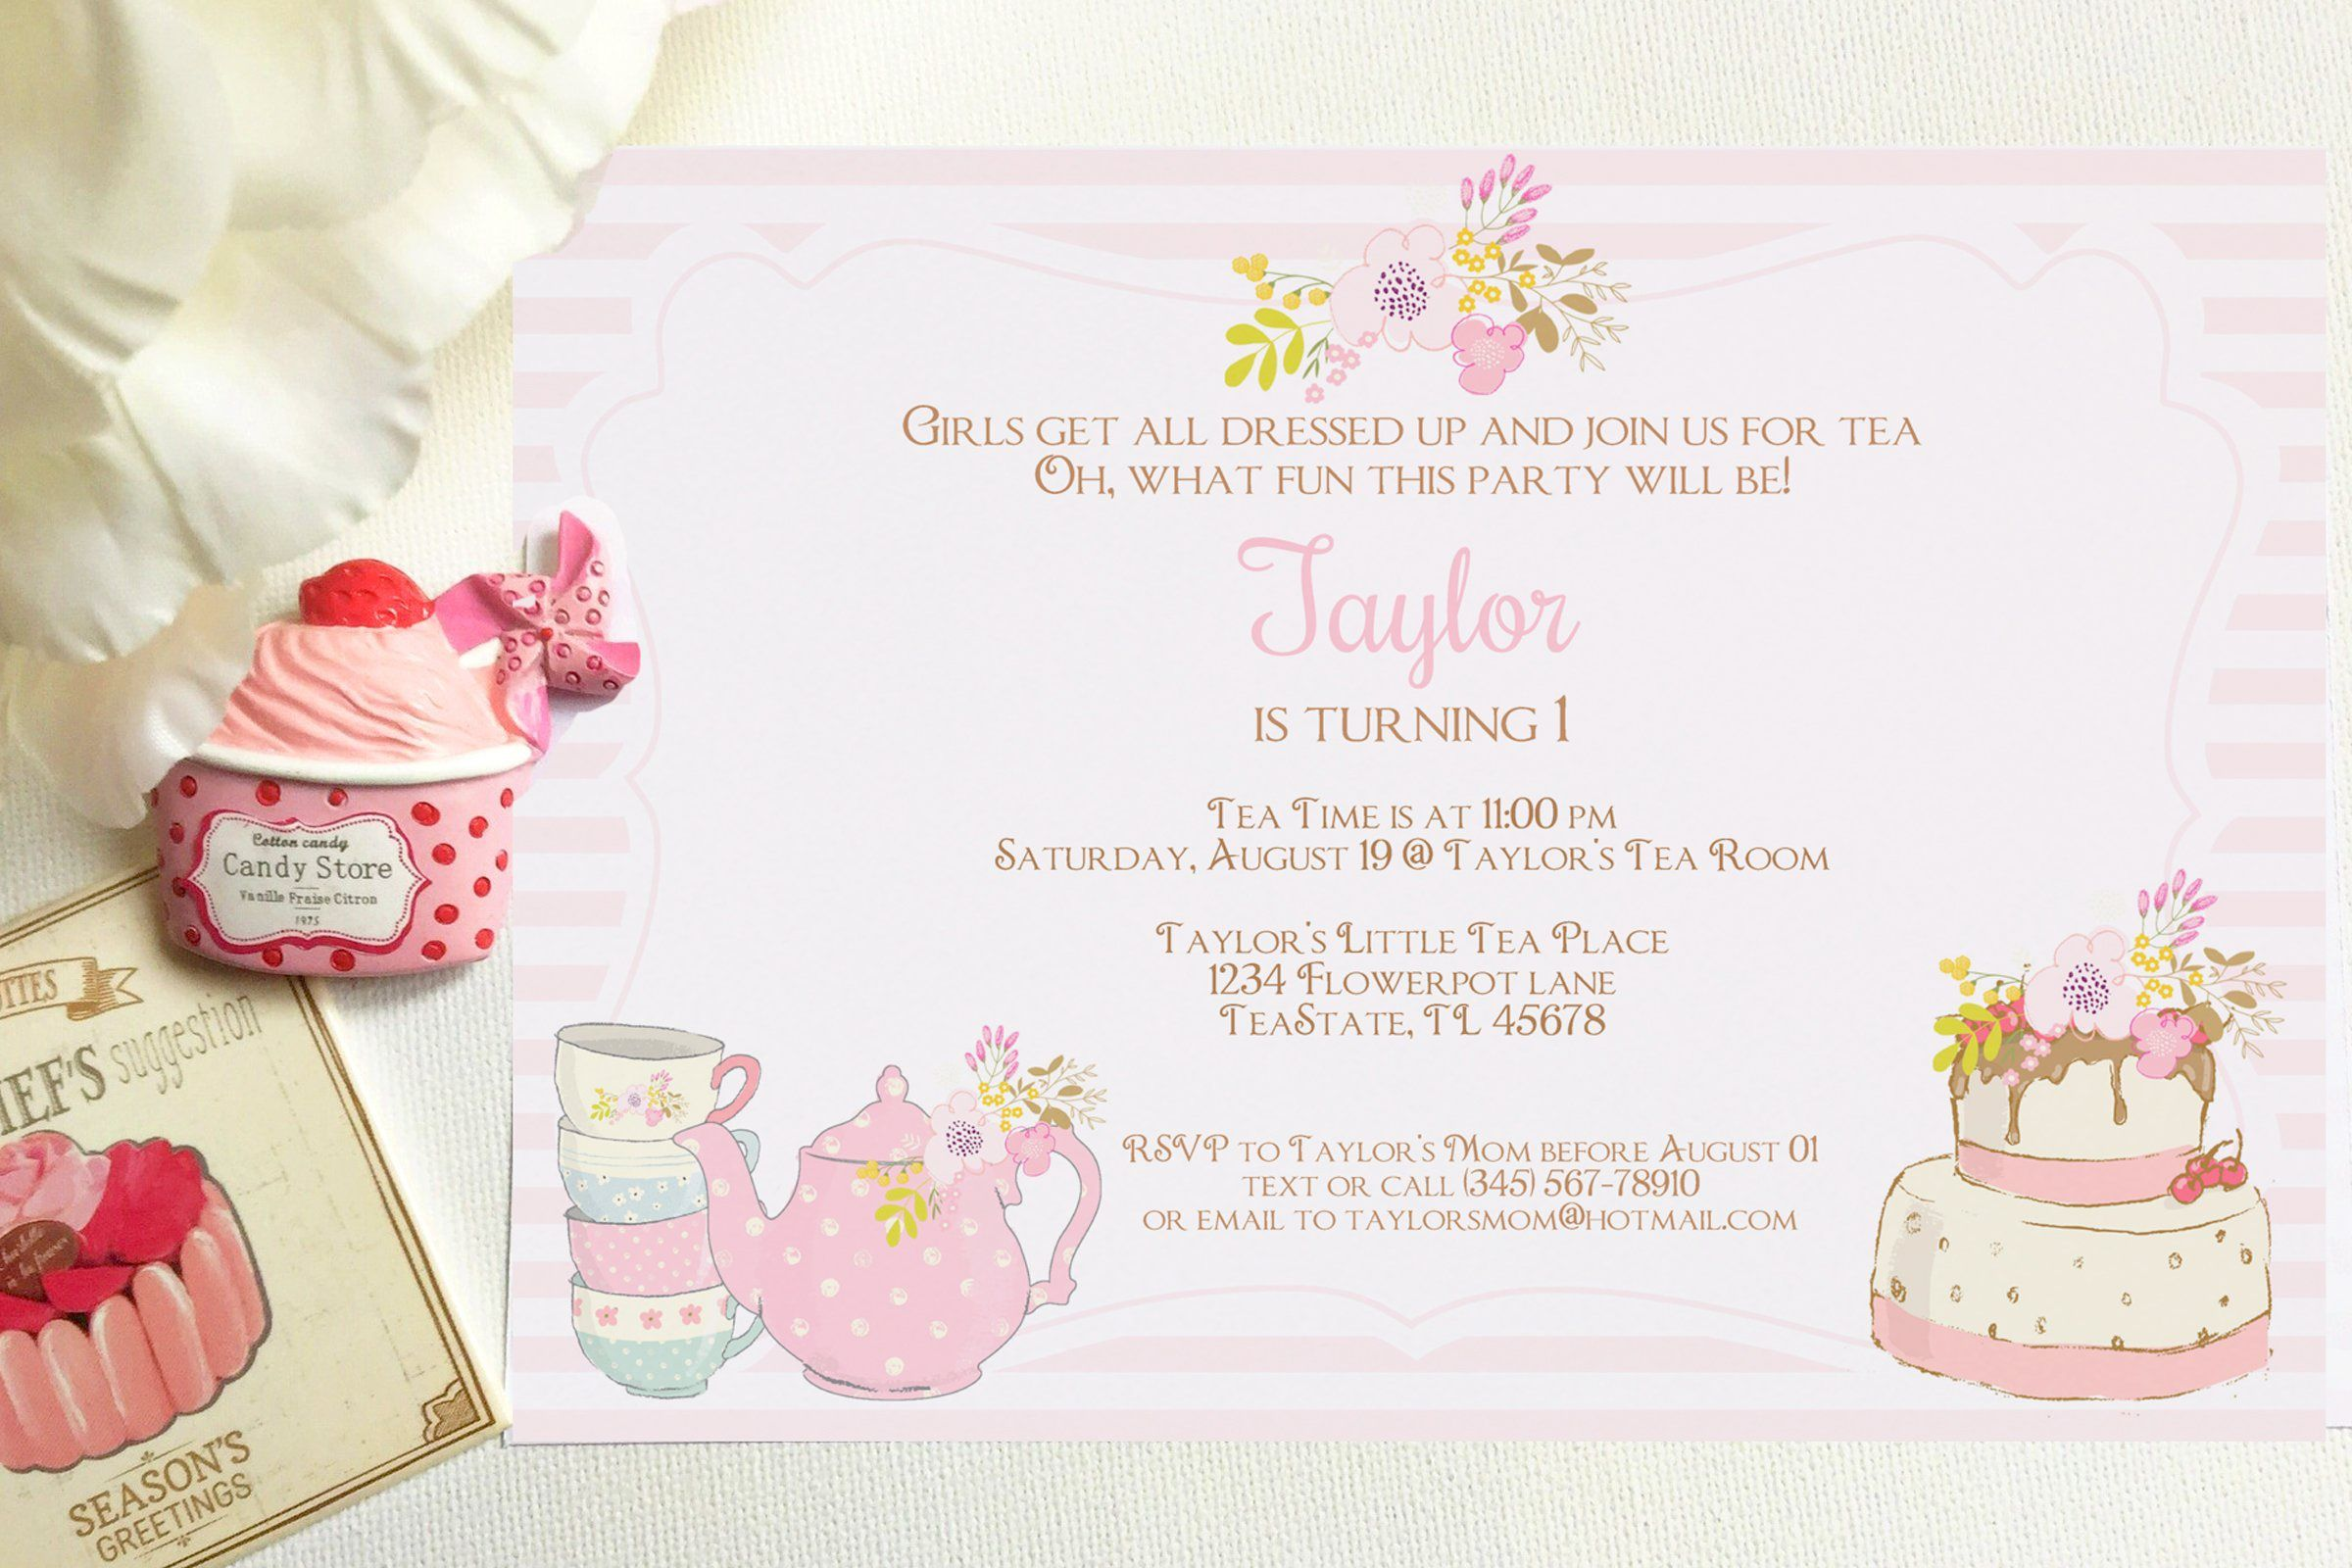 008 Outstanding Tea Party Invitation Template High Definition  Card Victorian Wording For Bridal ShowerFull